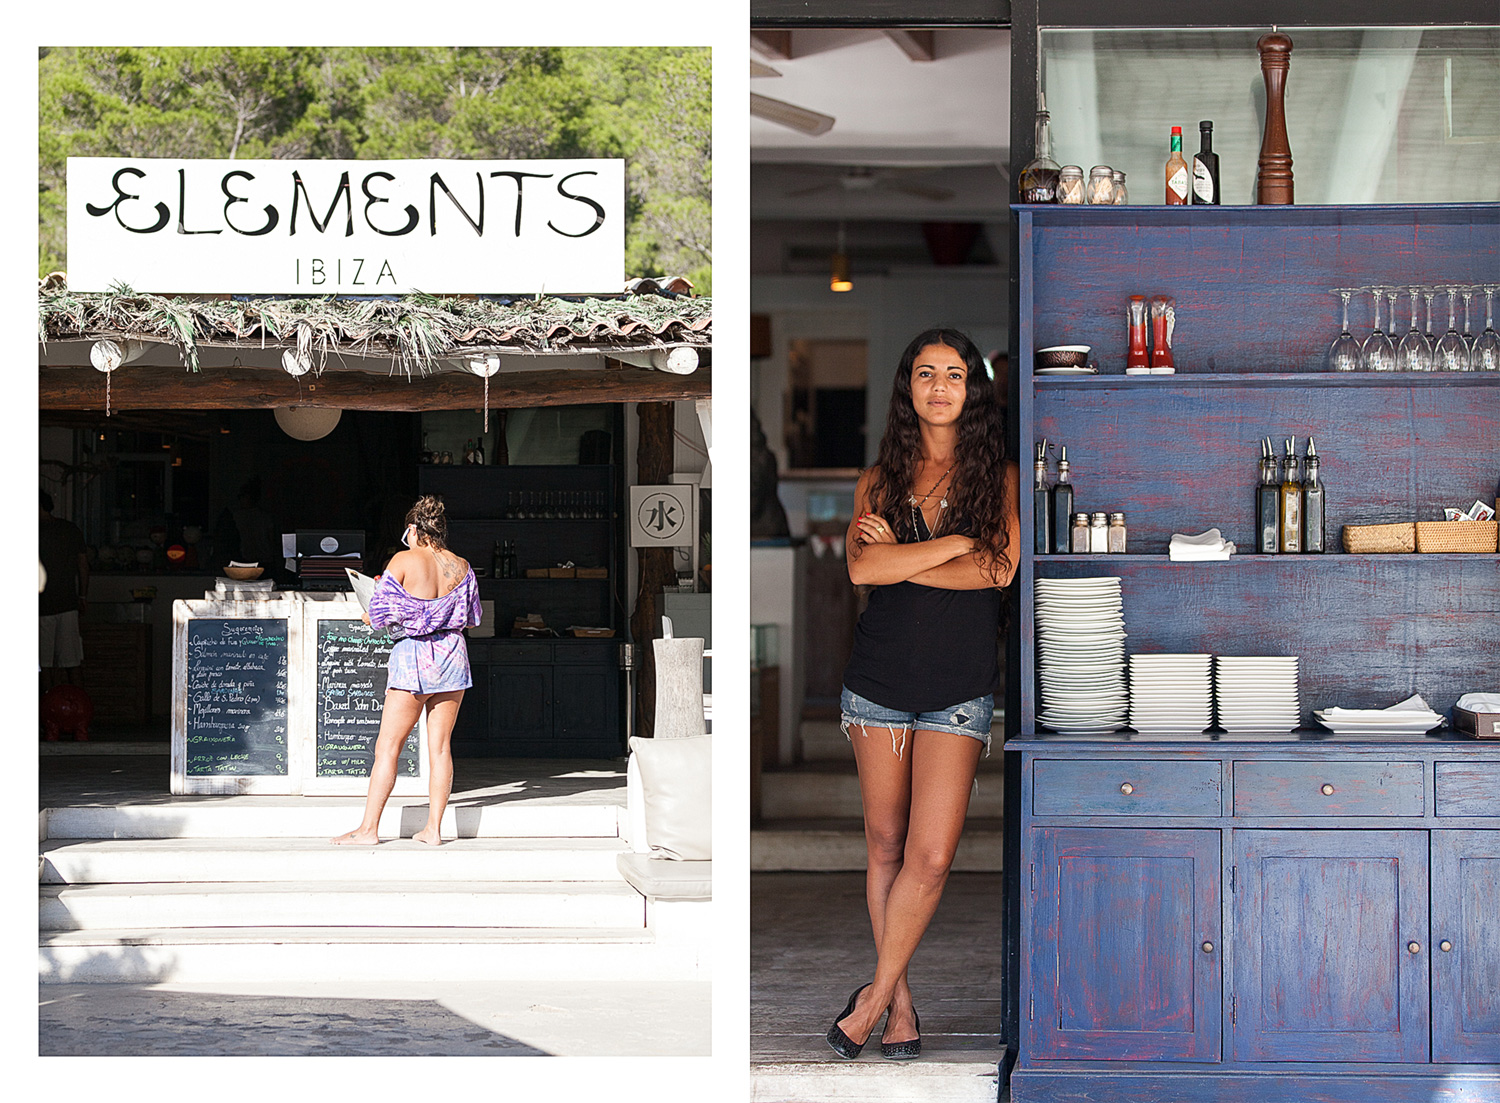 Elements-Ibiza-restaurant,-juice-bar,-lounge-bar,-Cala-Benirras,-Saria-Silny-manager,Ibiza